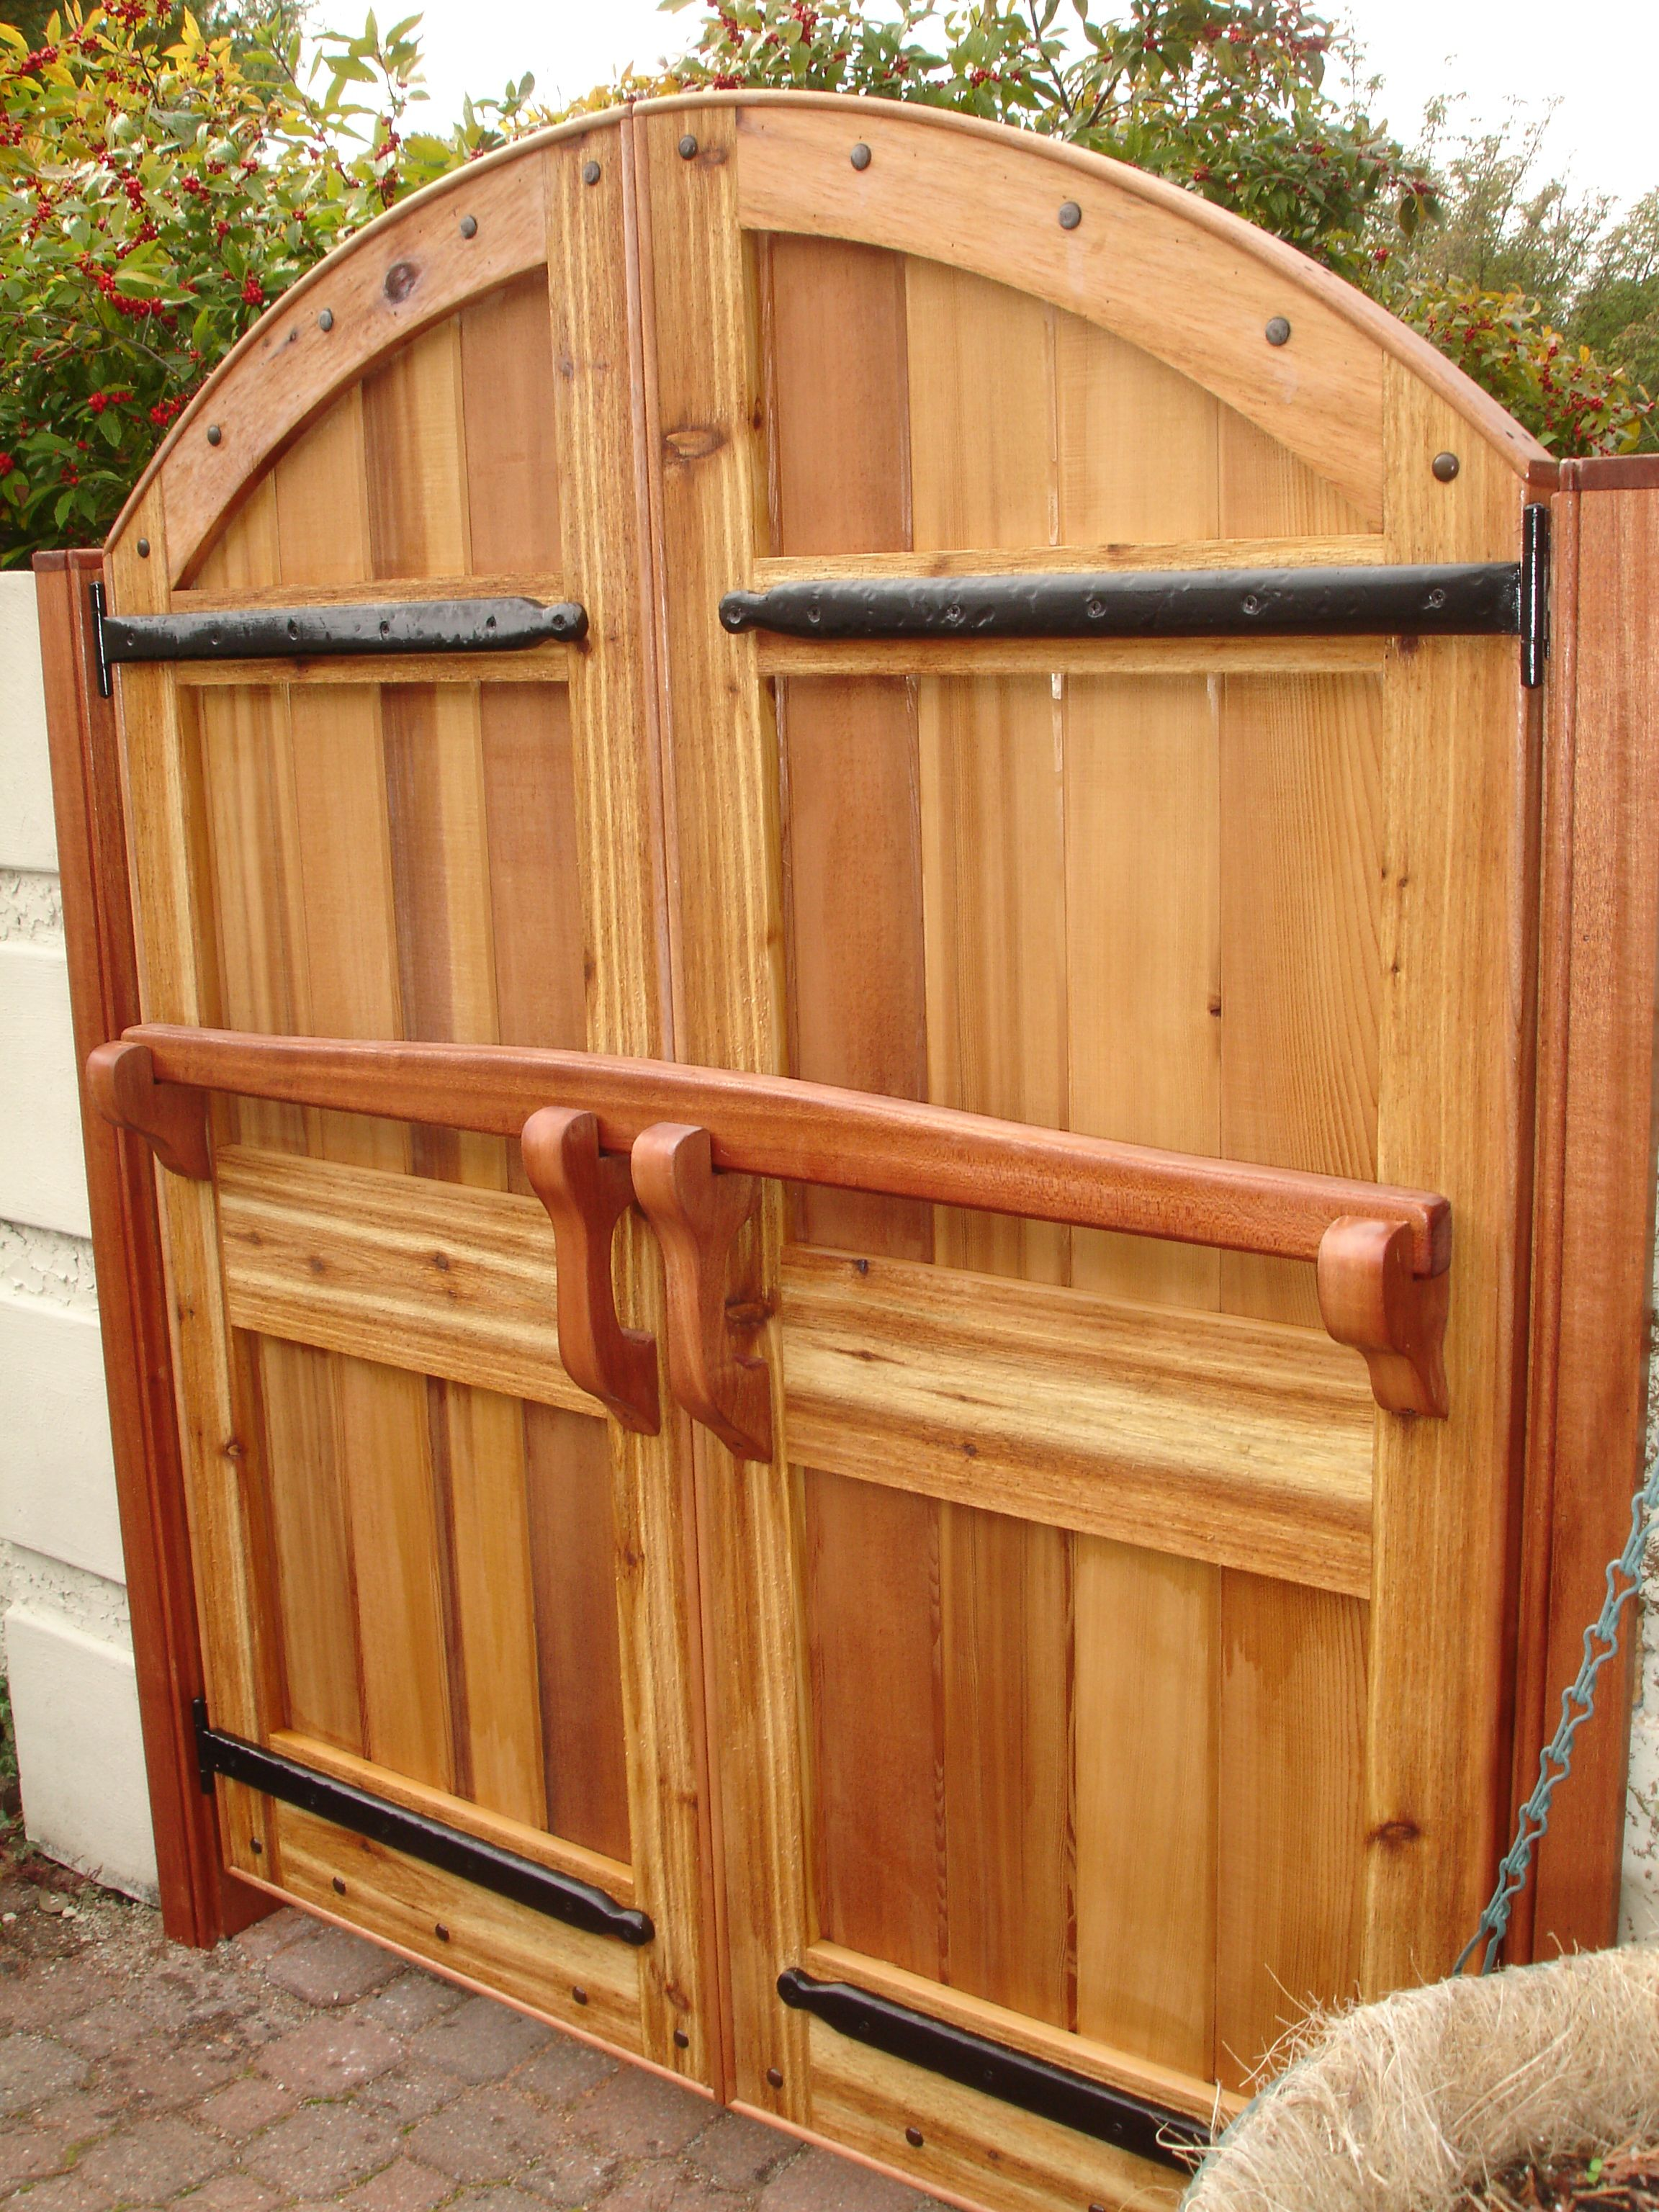 wooden gate the wind could not blow this one open cyril s pinnwand pinterest gate gates. Black Bedroom Furniture Sets. Home Design Ideas